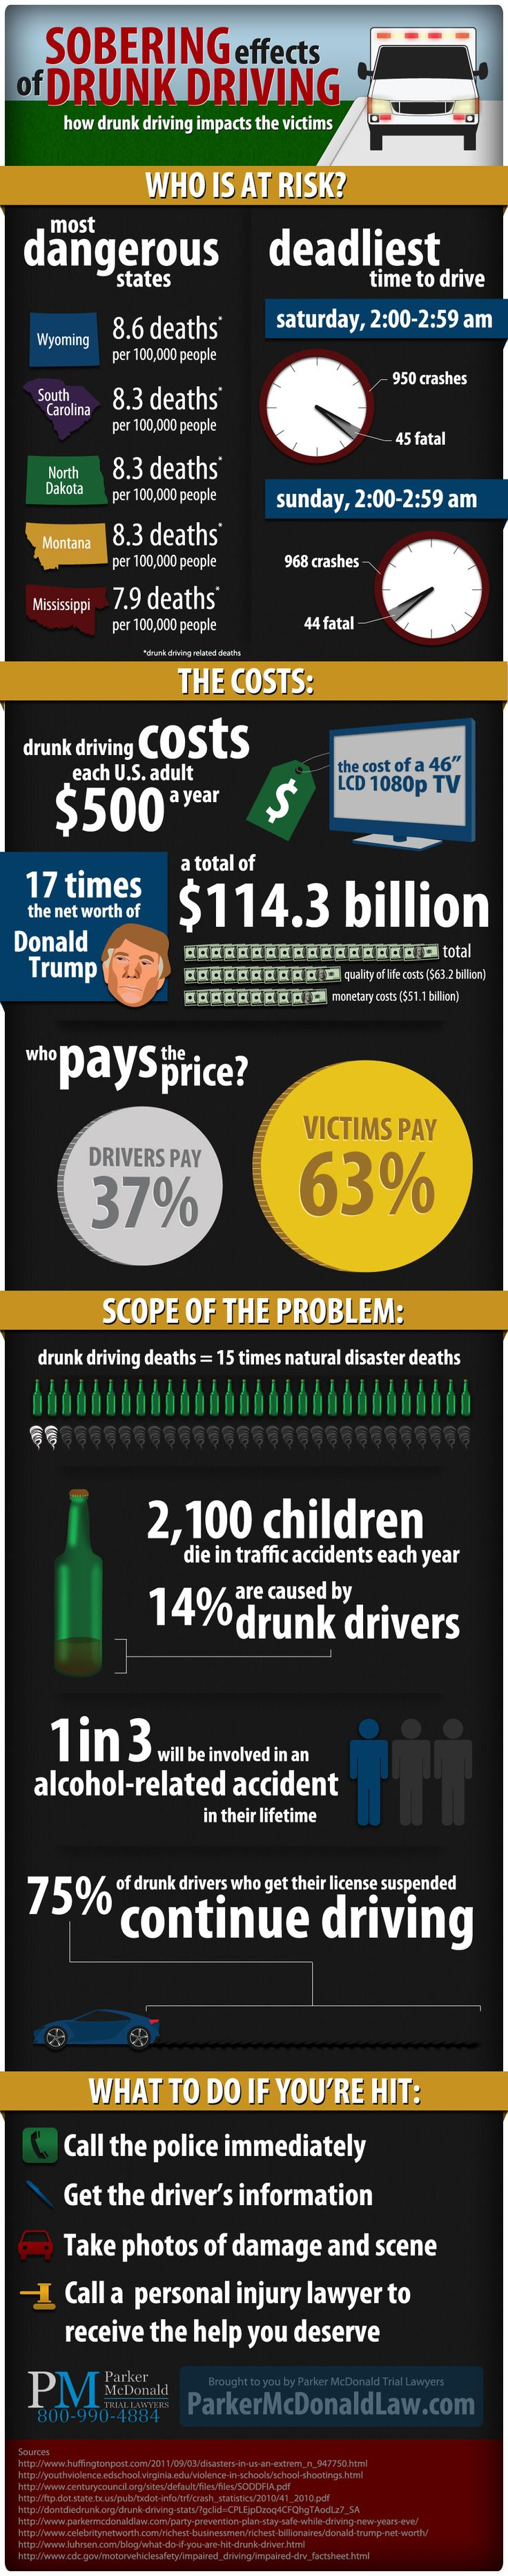 images about communications cars the zoo and the sobering effects of drunk driving infographic